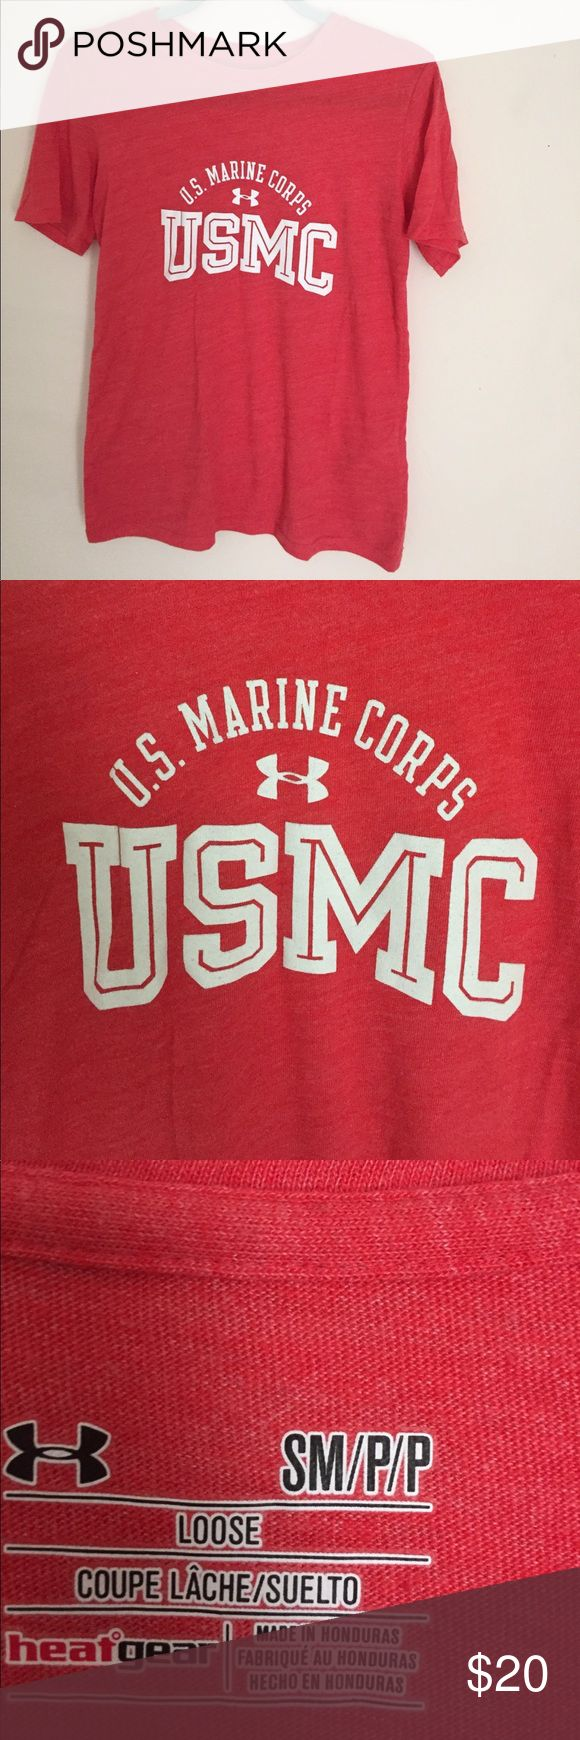 United States 🇺🇸 Marine Corps t-shirt United States 🇺🇸 Marine Corps t-shirt. Women's size small. Worn and washed twice. Shirt is in like new condition. USMC. #supportourtroops Tops Tees - Short Sleeve